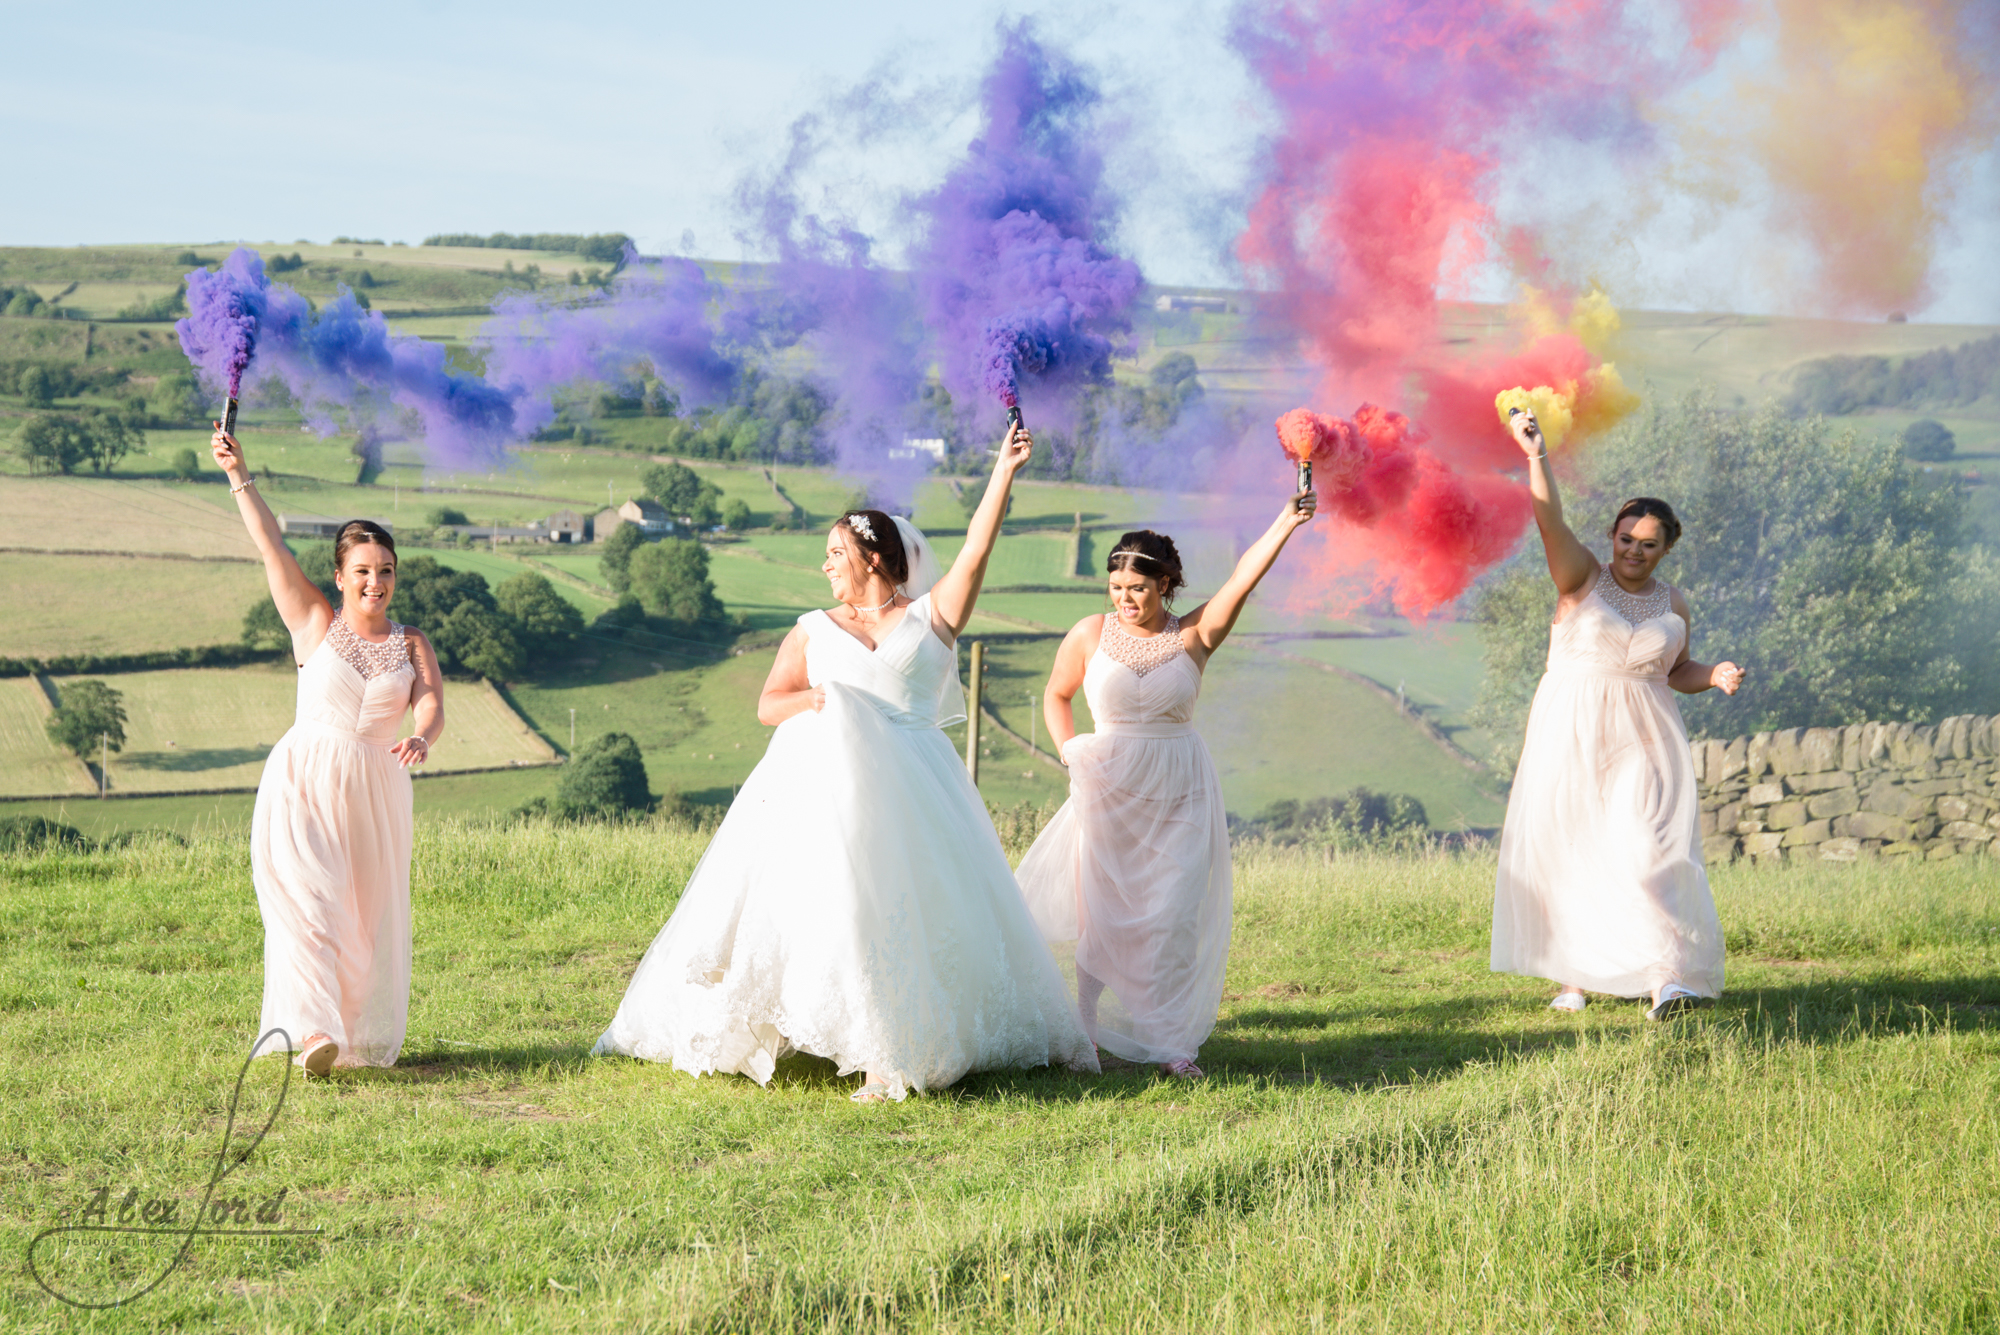 Purple and red smoke bombs light the sky as the bride and bridesmaids run towards the camerq